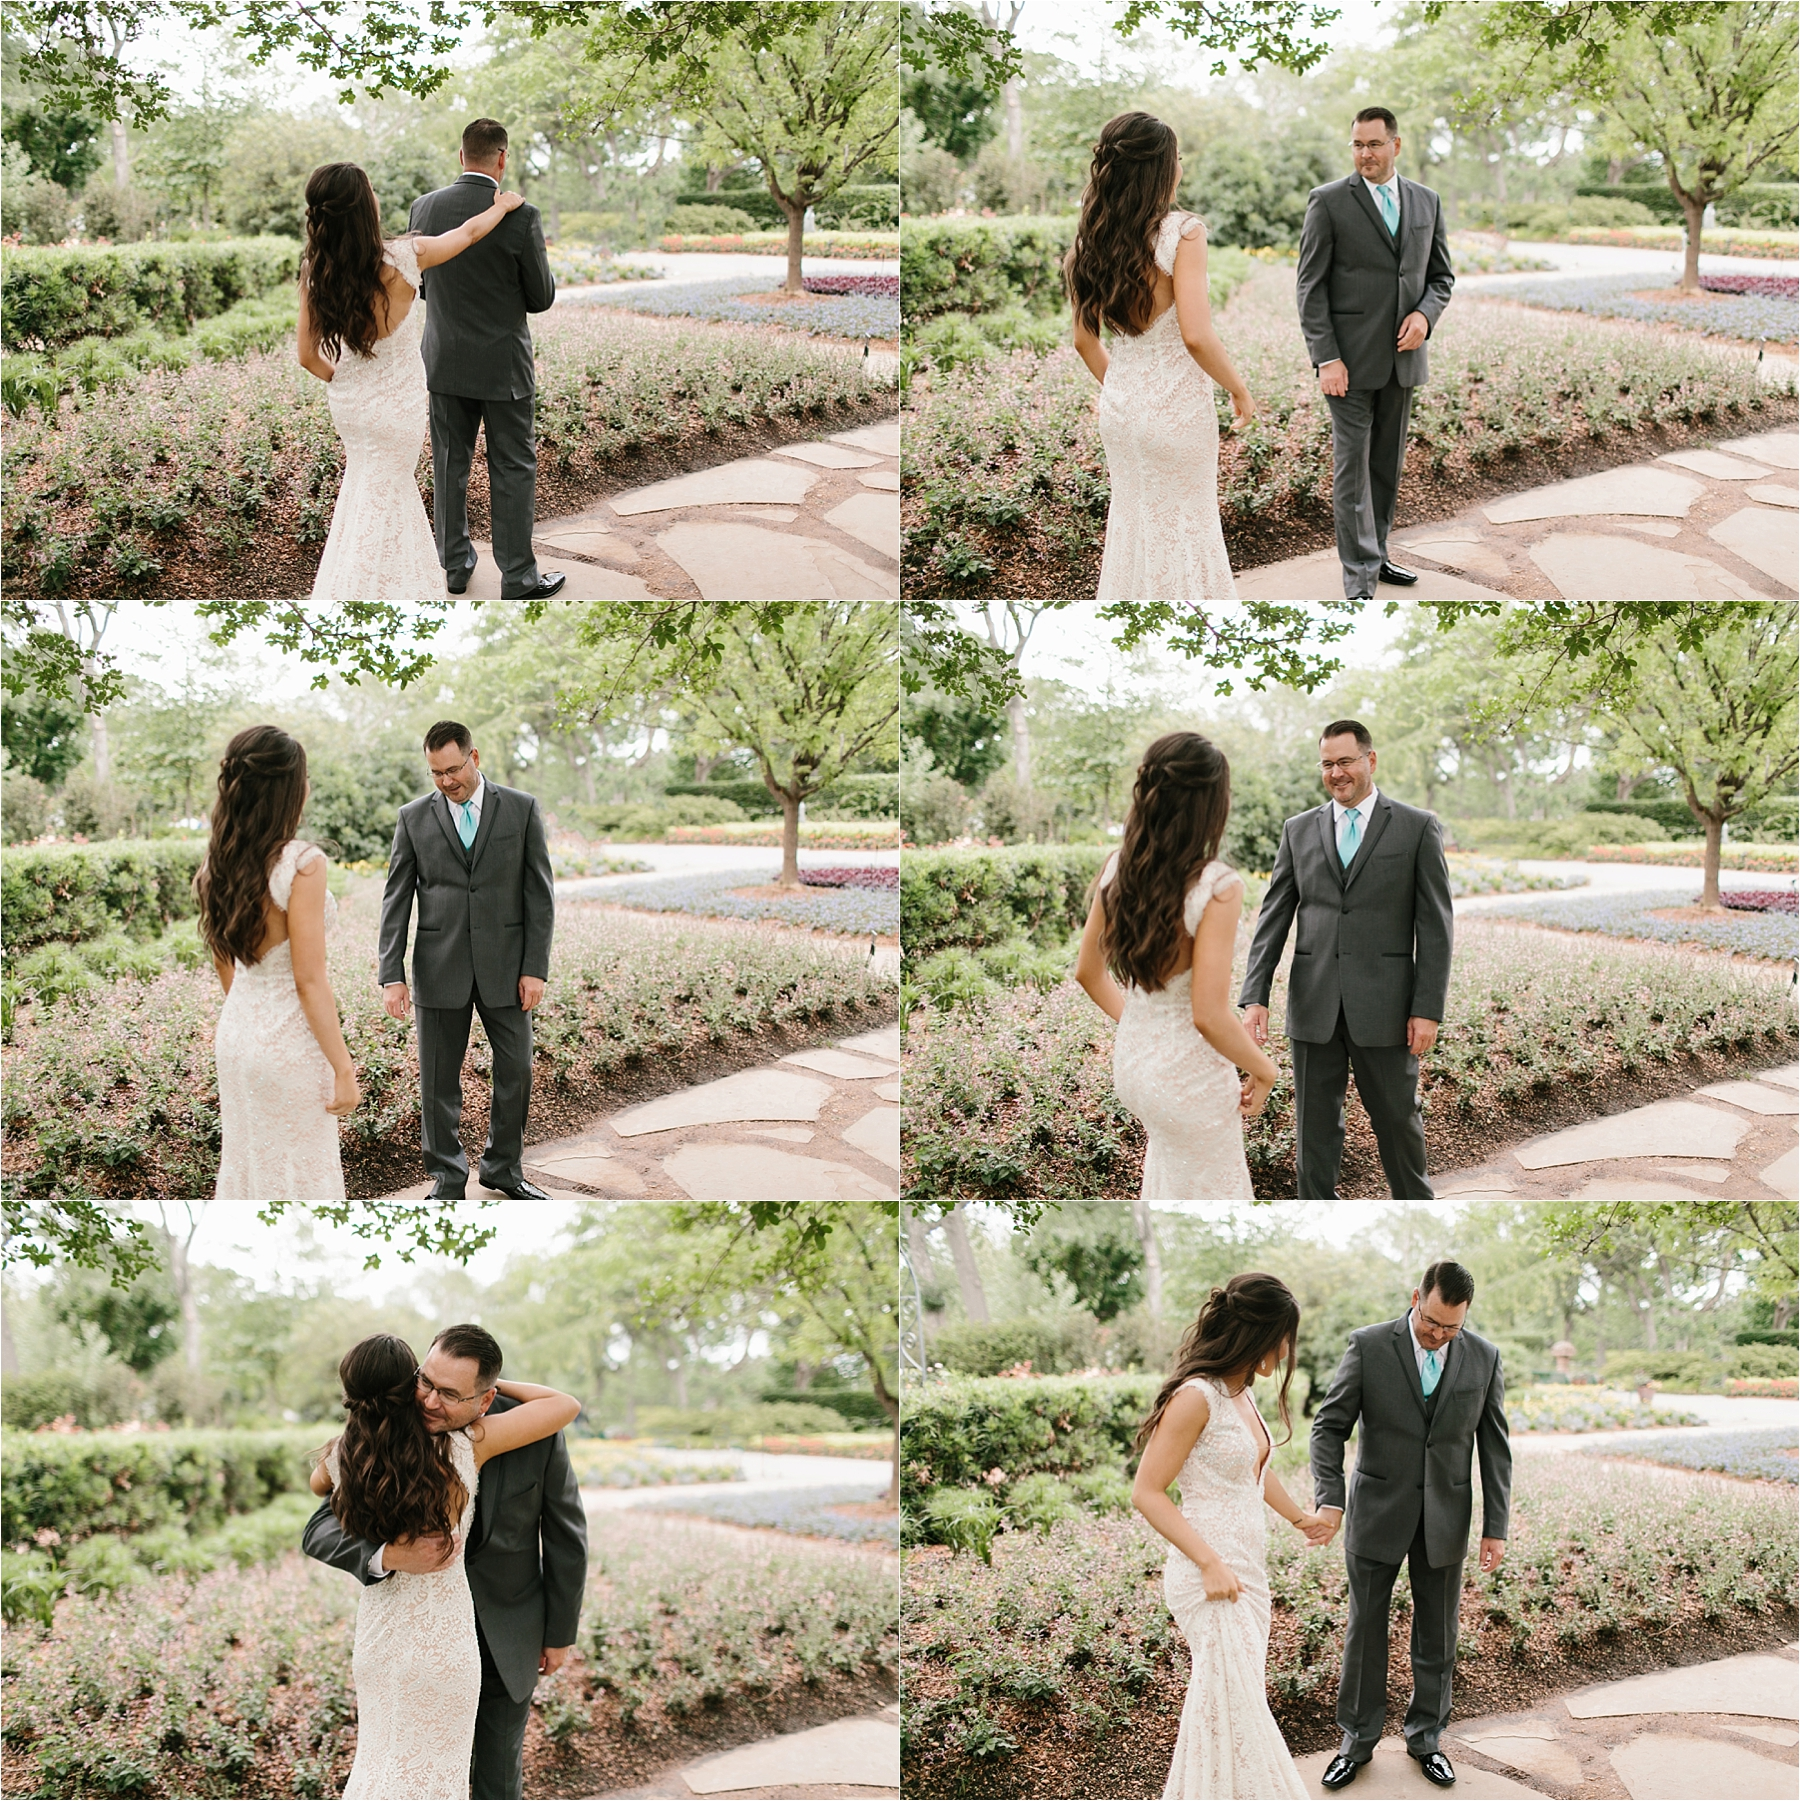 Devyn + Caden __ a Dallas Arboretum Garden Style Wedding by North Texas Wedding Photographer Rachel Meagan Photography __ 055